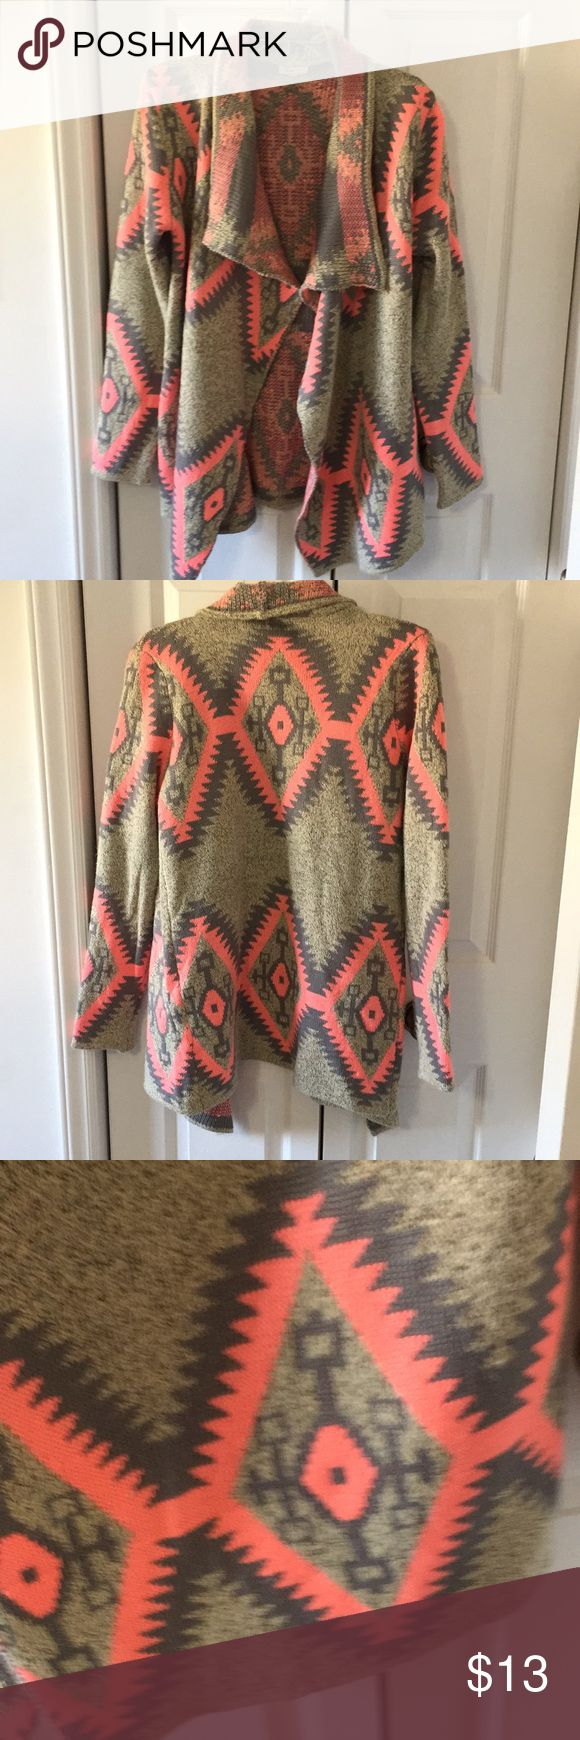 Debut tribal print sweater Super cute sweater with nice drape. Better for a medium. One small pull in back as well as several on collar as pictured. Great color! Thanks for looking! Debut Sweaters